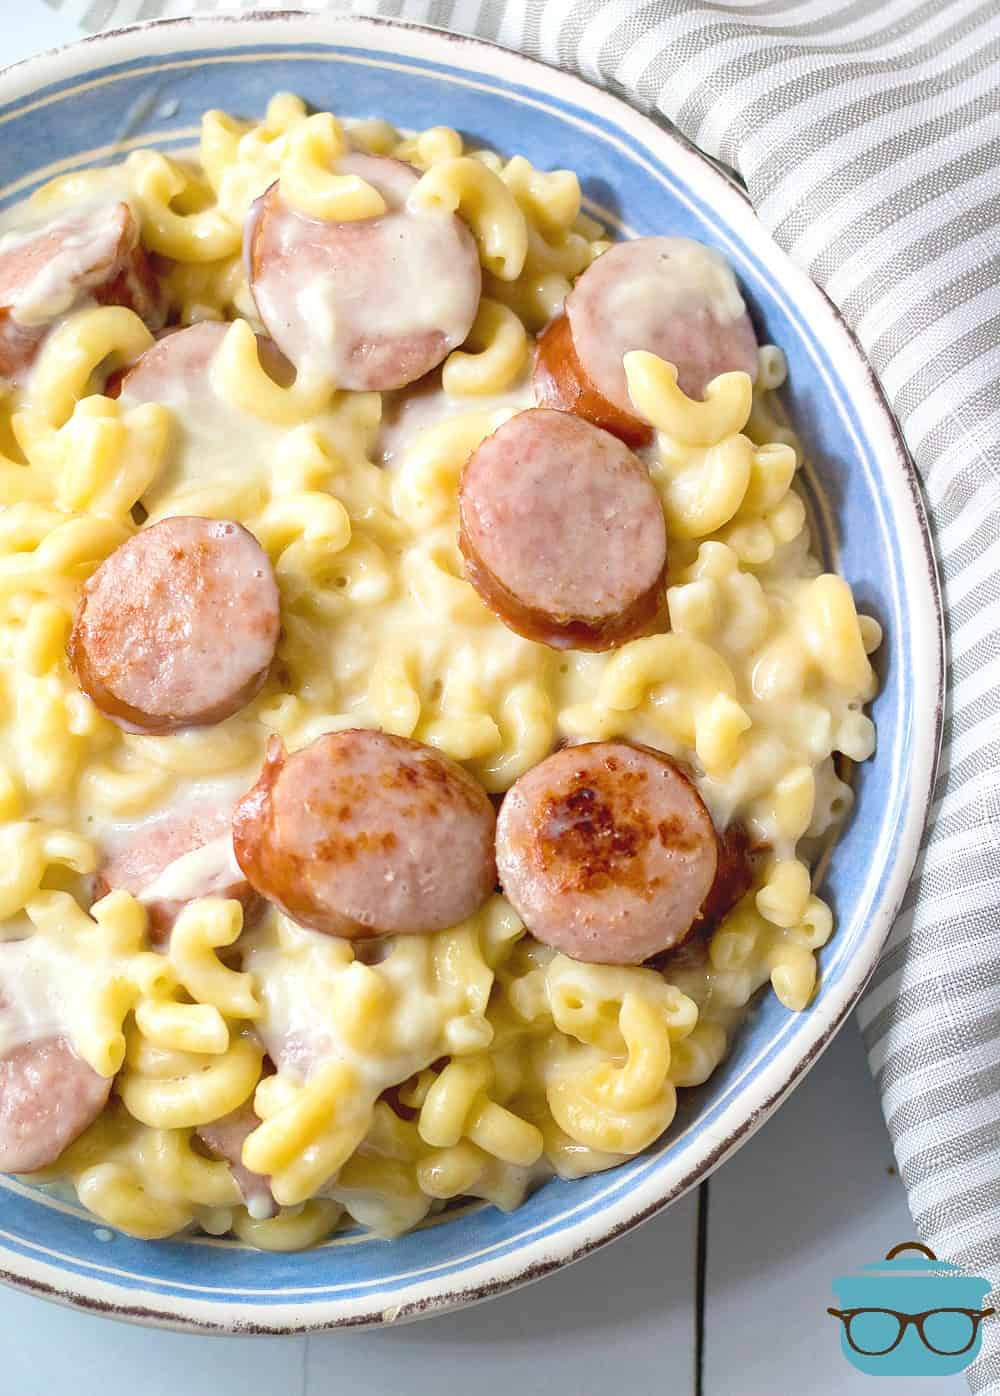 Instant Pot Sausage White Cheddar Macaroni and Cheese shown served in a bowl.